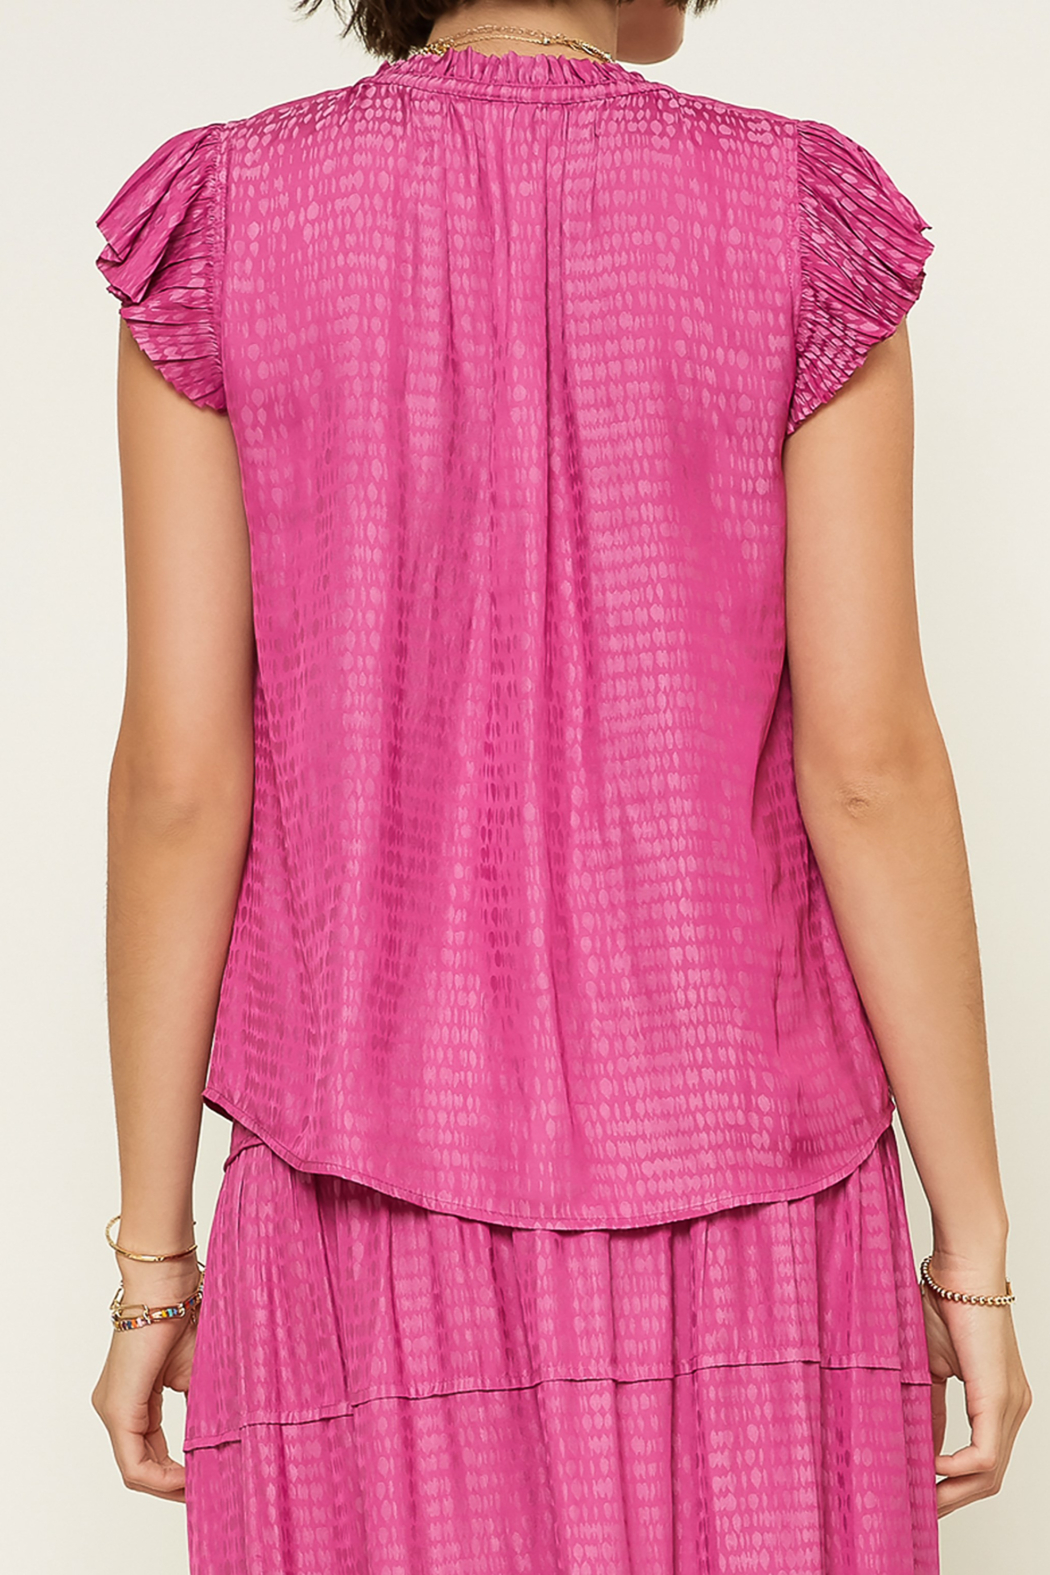 Current Air  Abstract V-Neck Pleated Cap Sleeve Blouse - Front Full Image